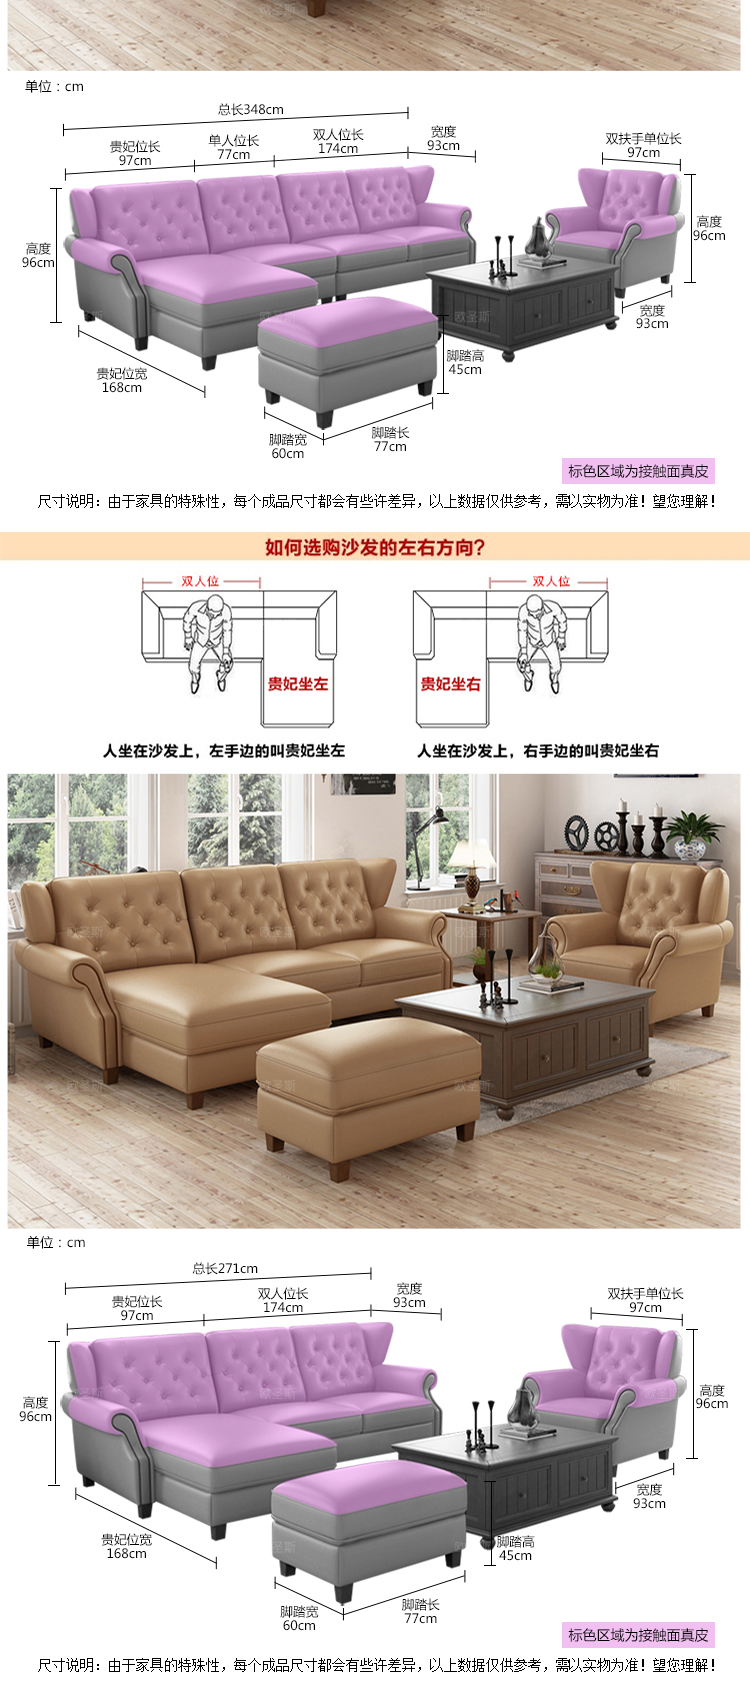 light coffee American style new designs 2017 sectional living room ...